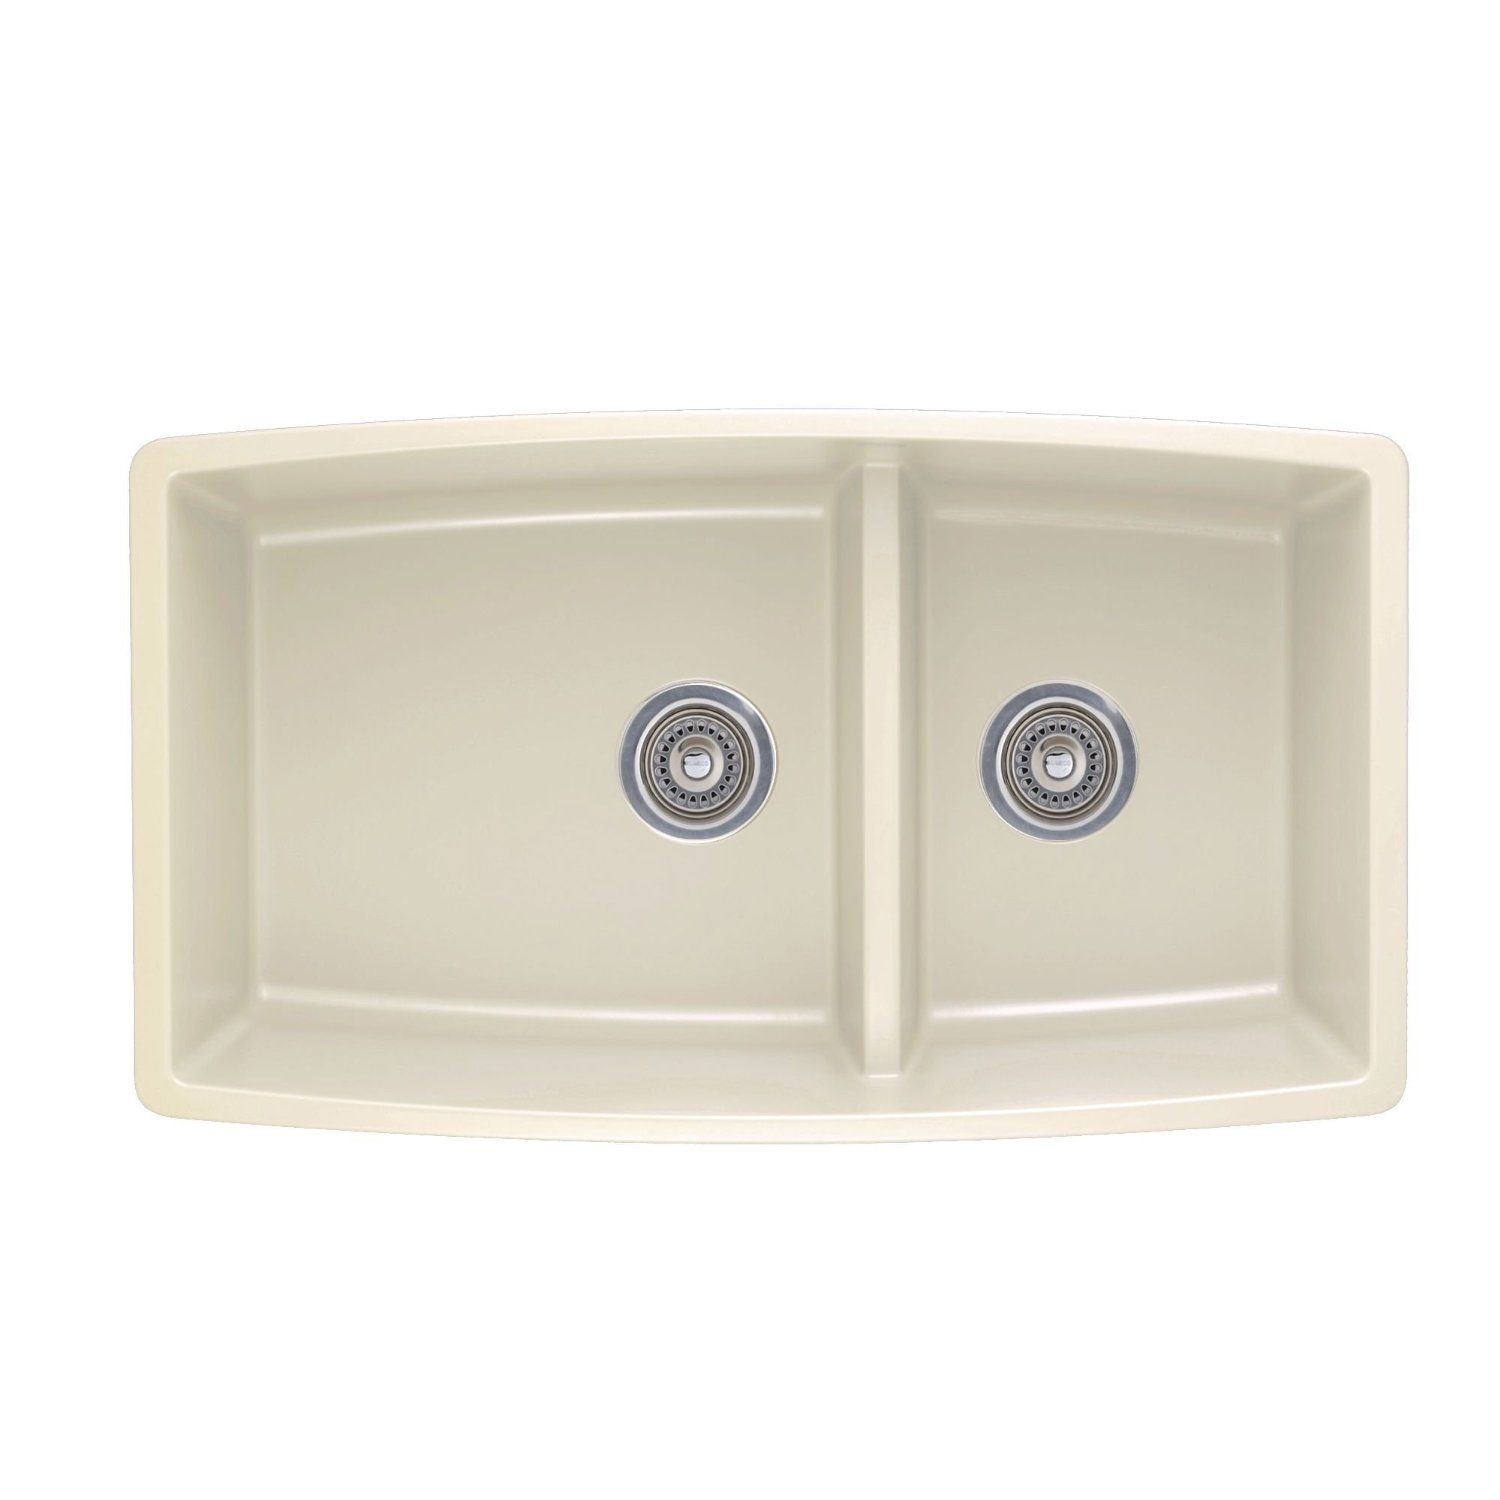 Details about Blanco 441311 Performa 1.75 Medium Bowl Sink, Biscuit